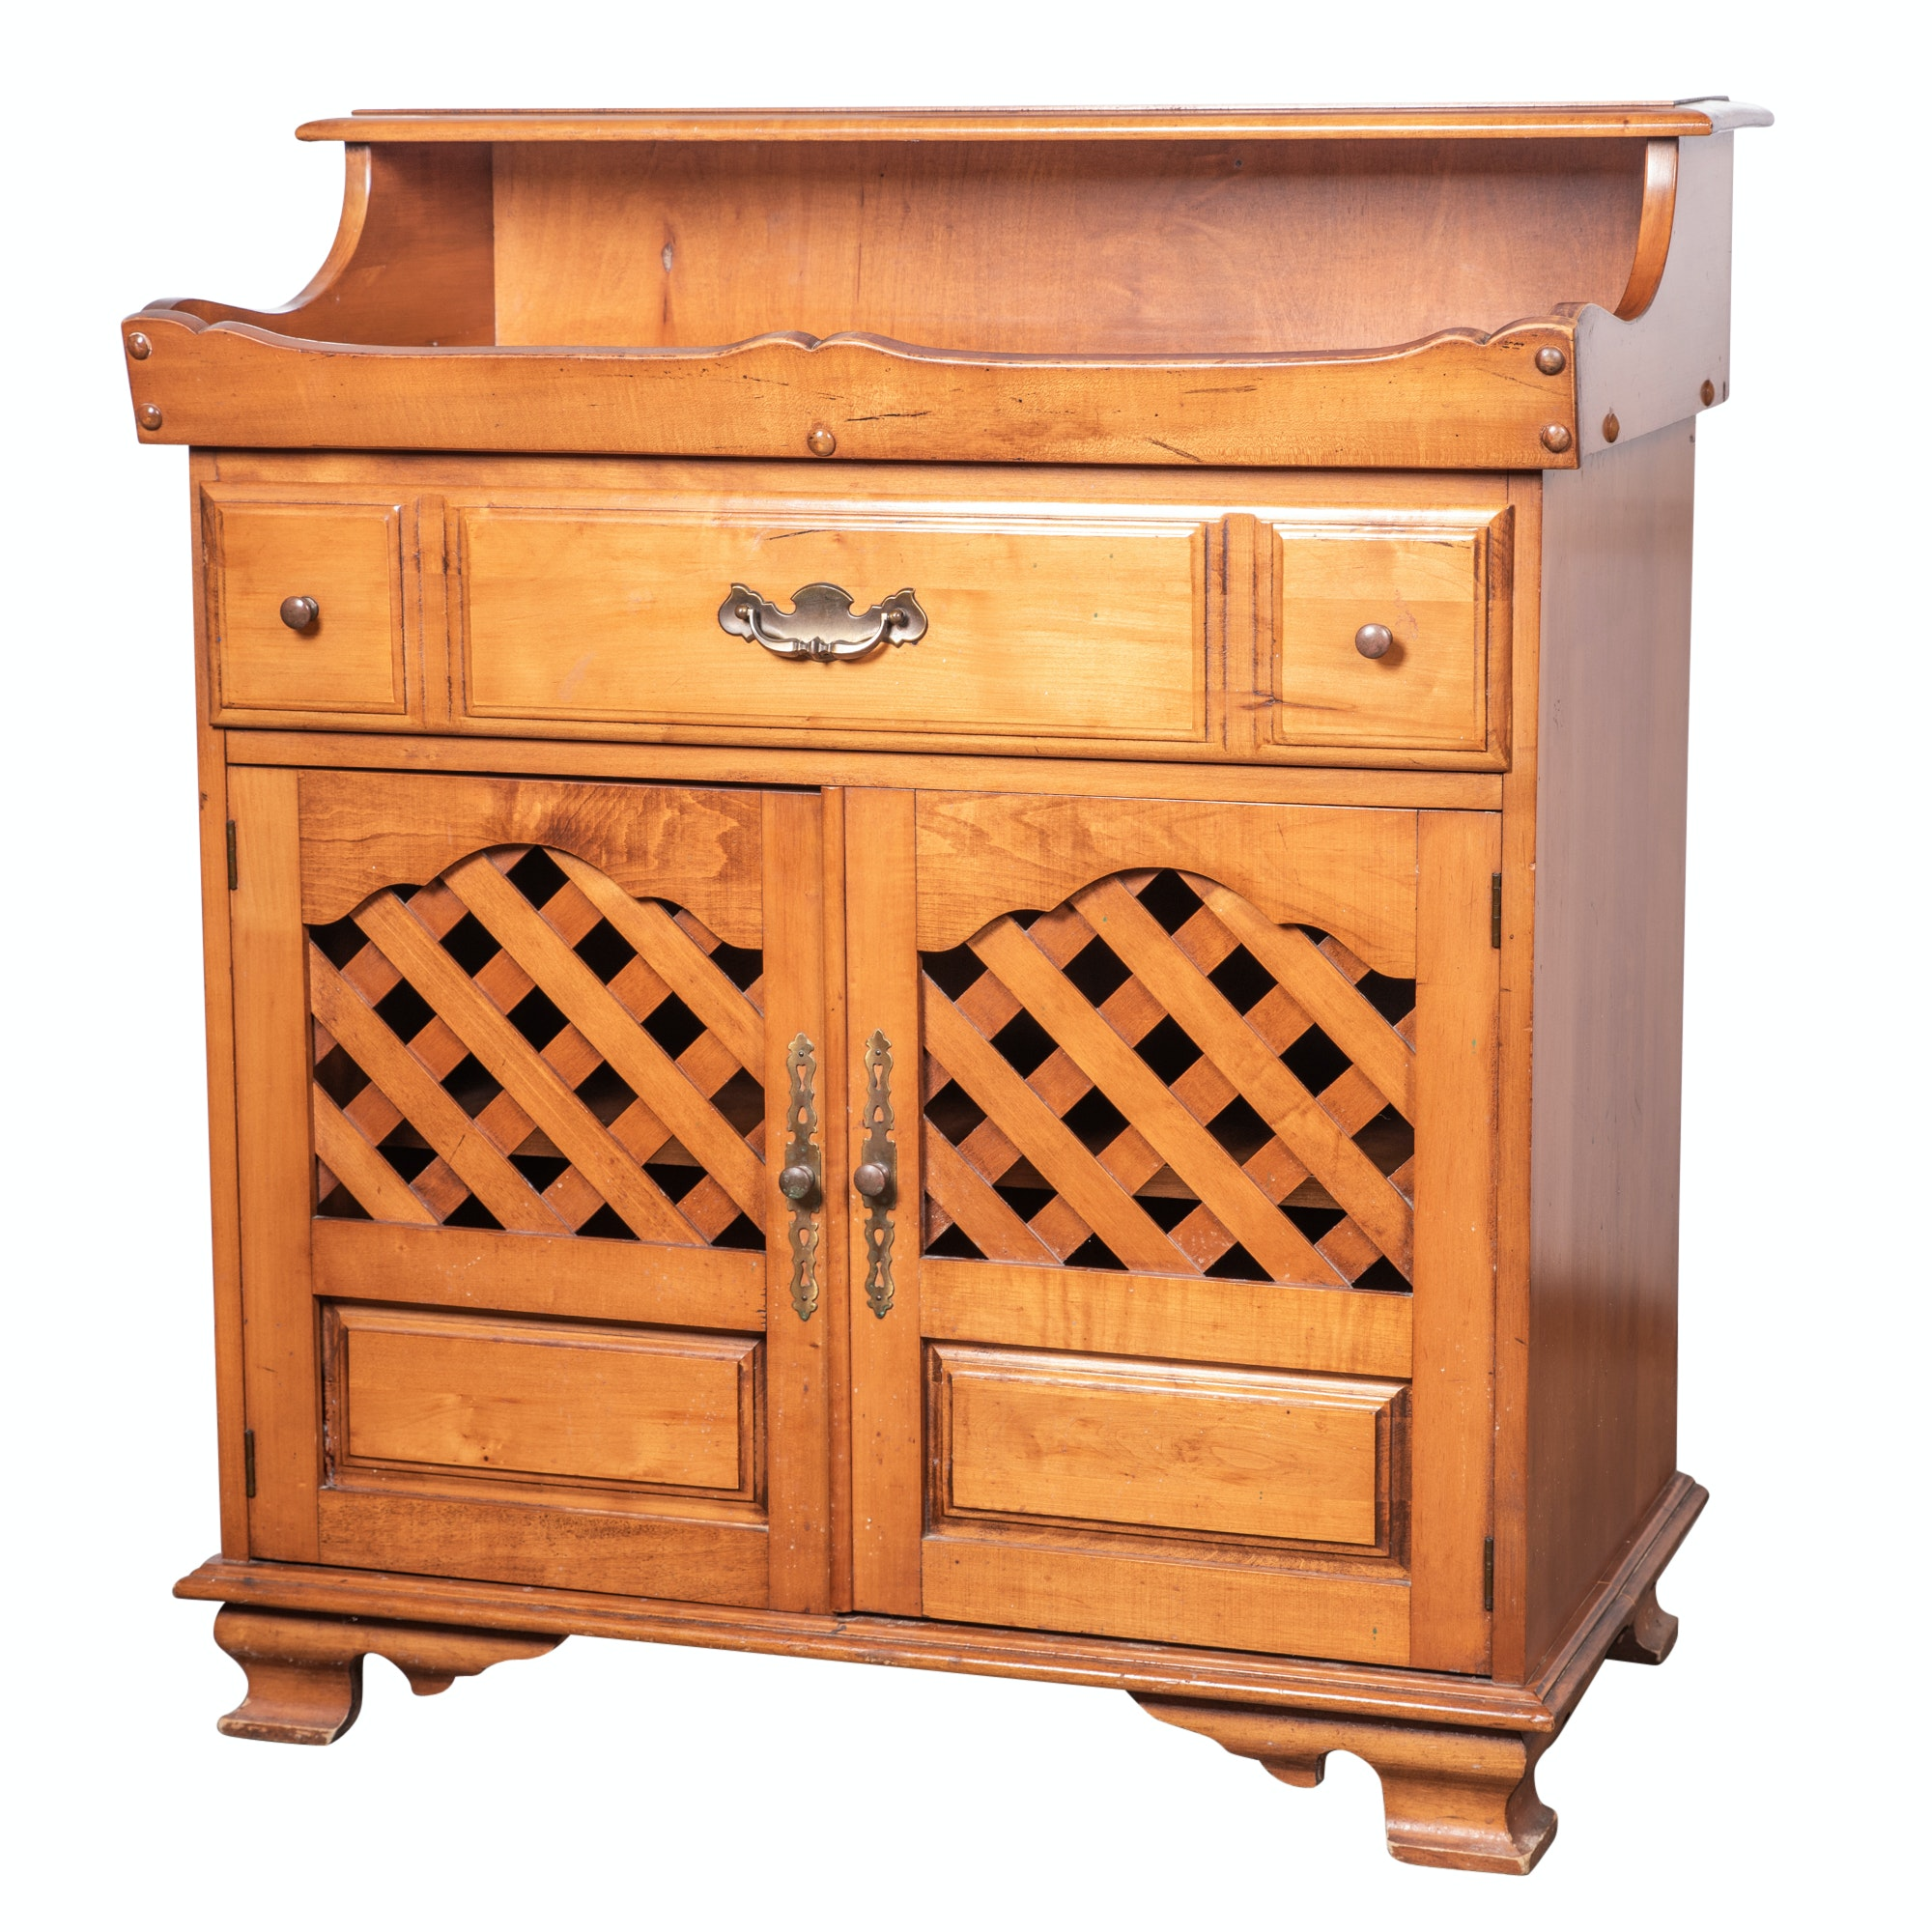 Colonial Revival Maple Dry Sink, 20th Century